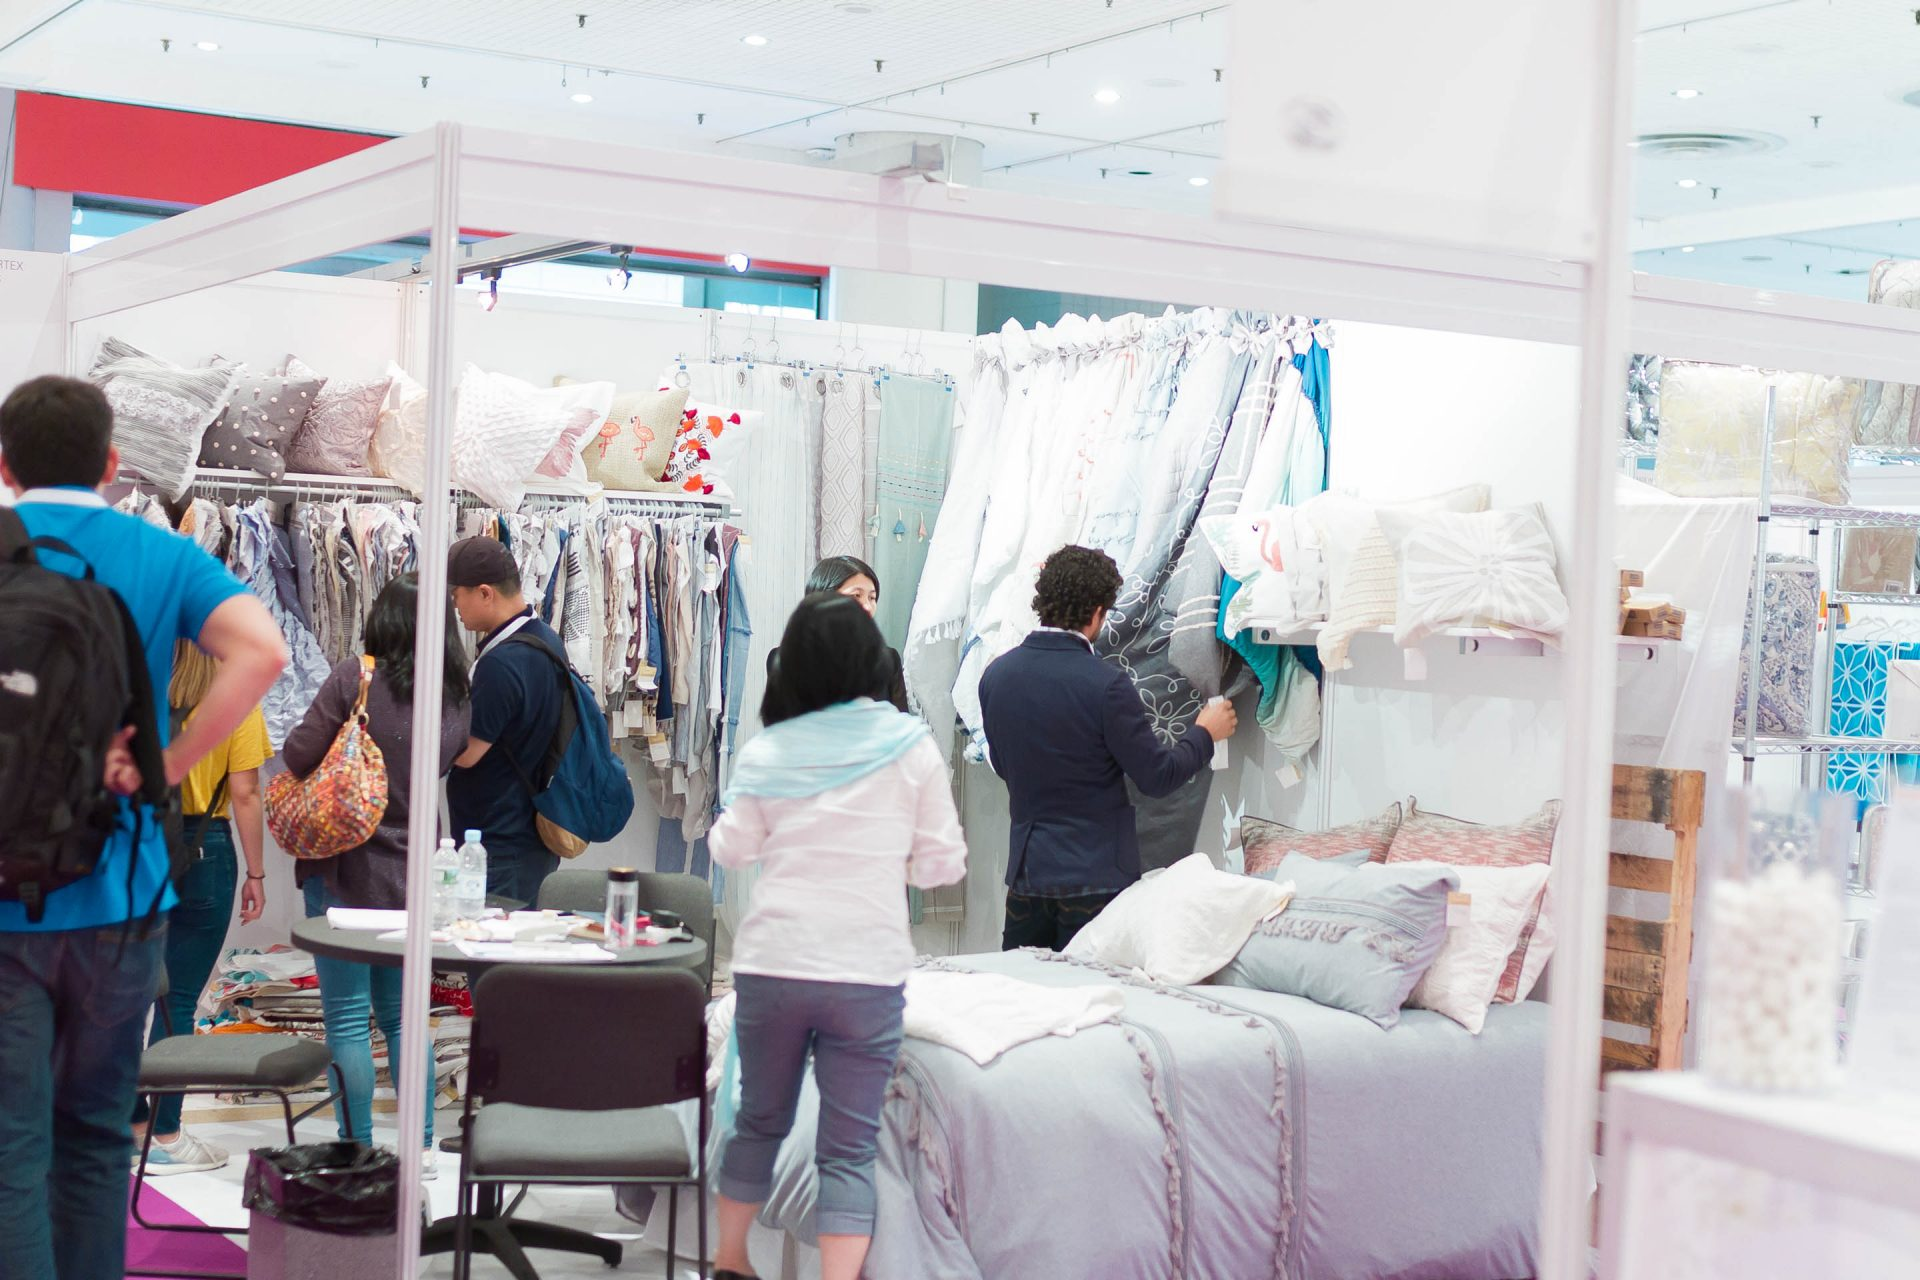 Thousands of buyers, retailers and manufacturers have the opportunity to examine and explore